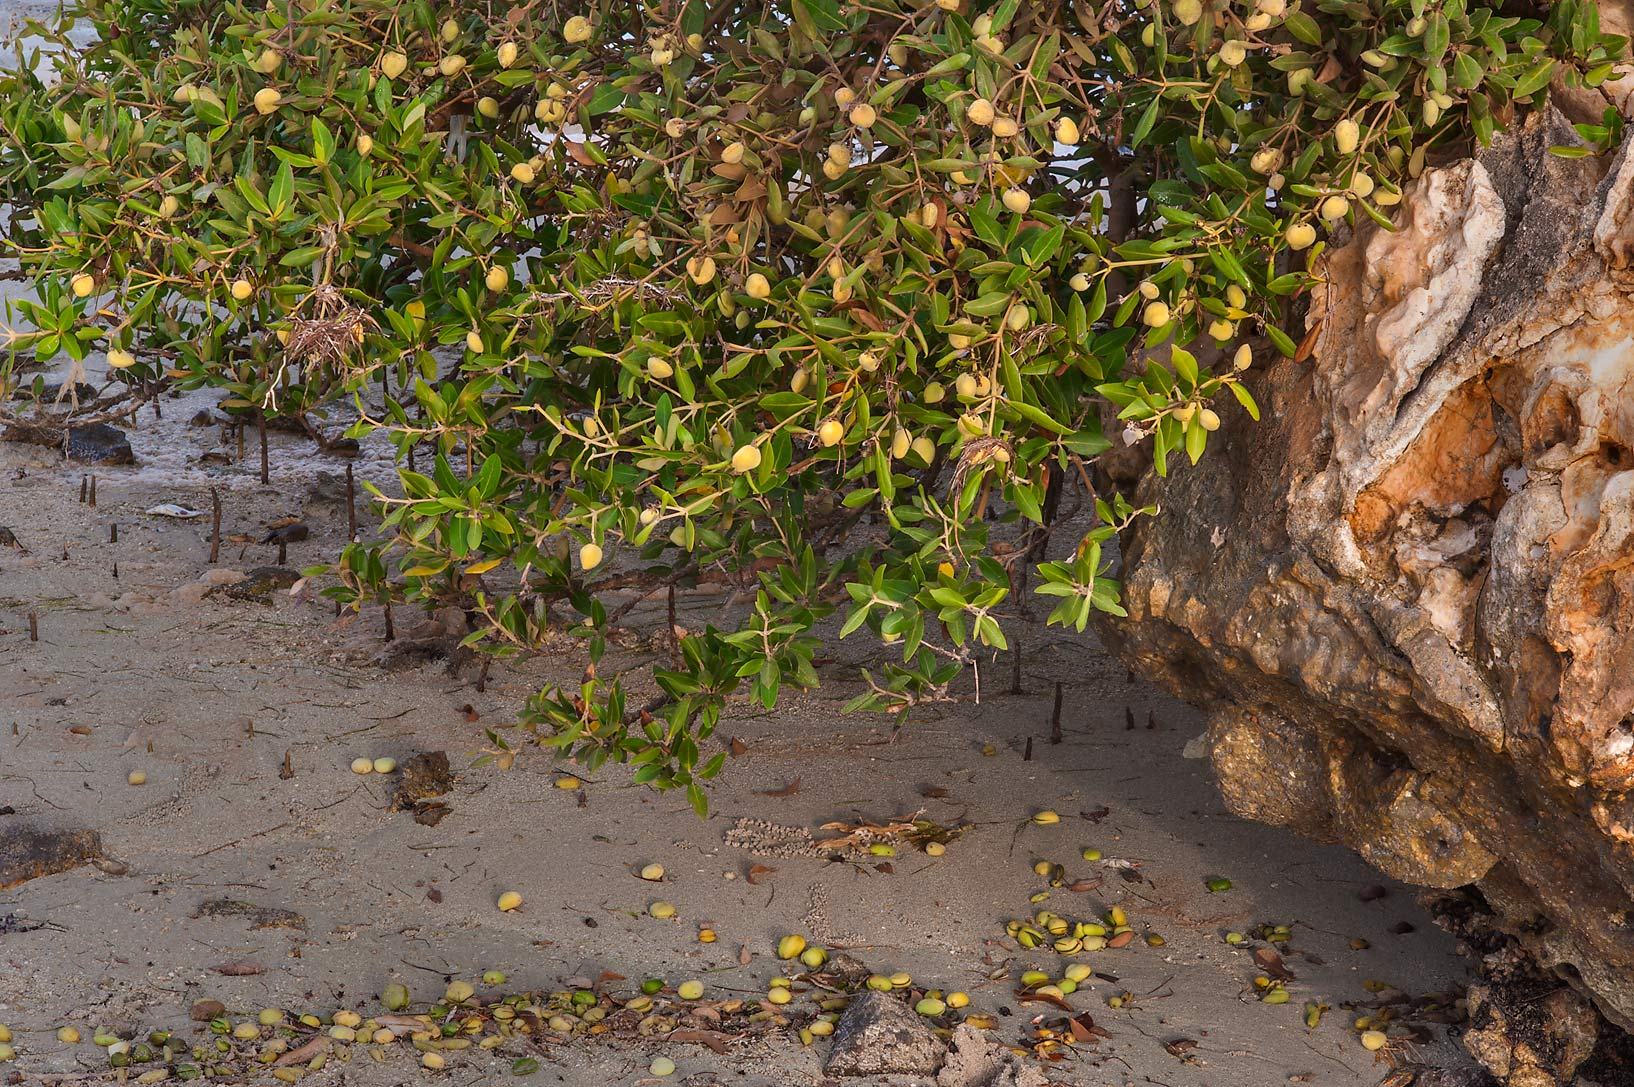 Mangrove (Avicennia marina) with fruits on Purple...Jazirat Bin Ghanim). Al Khor, Qatar